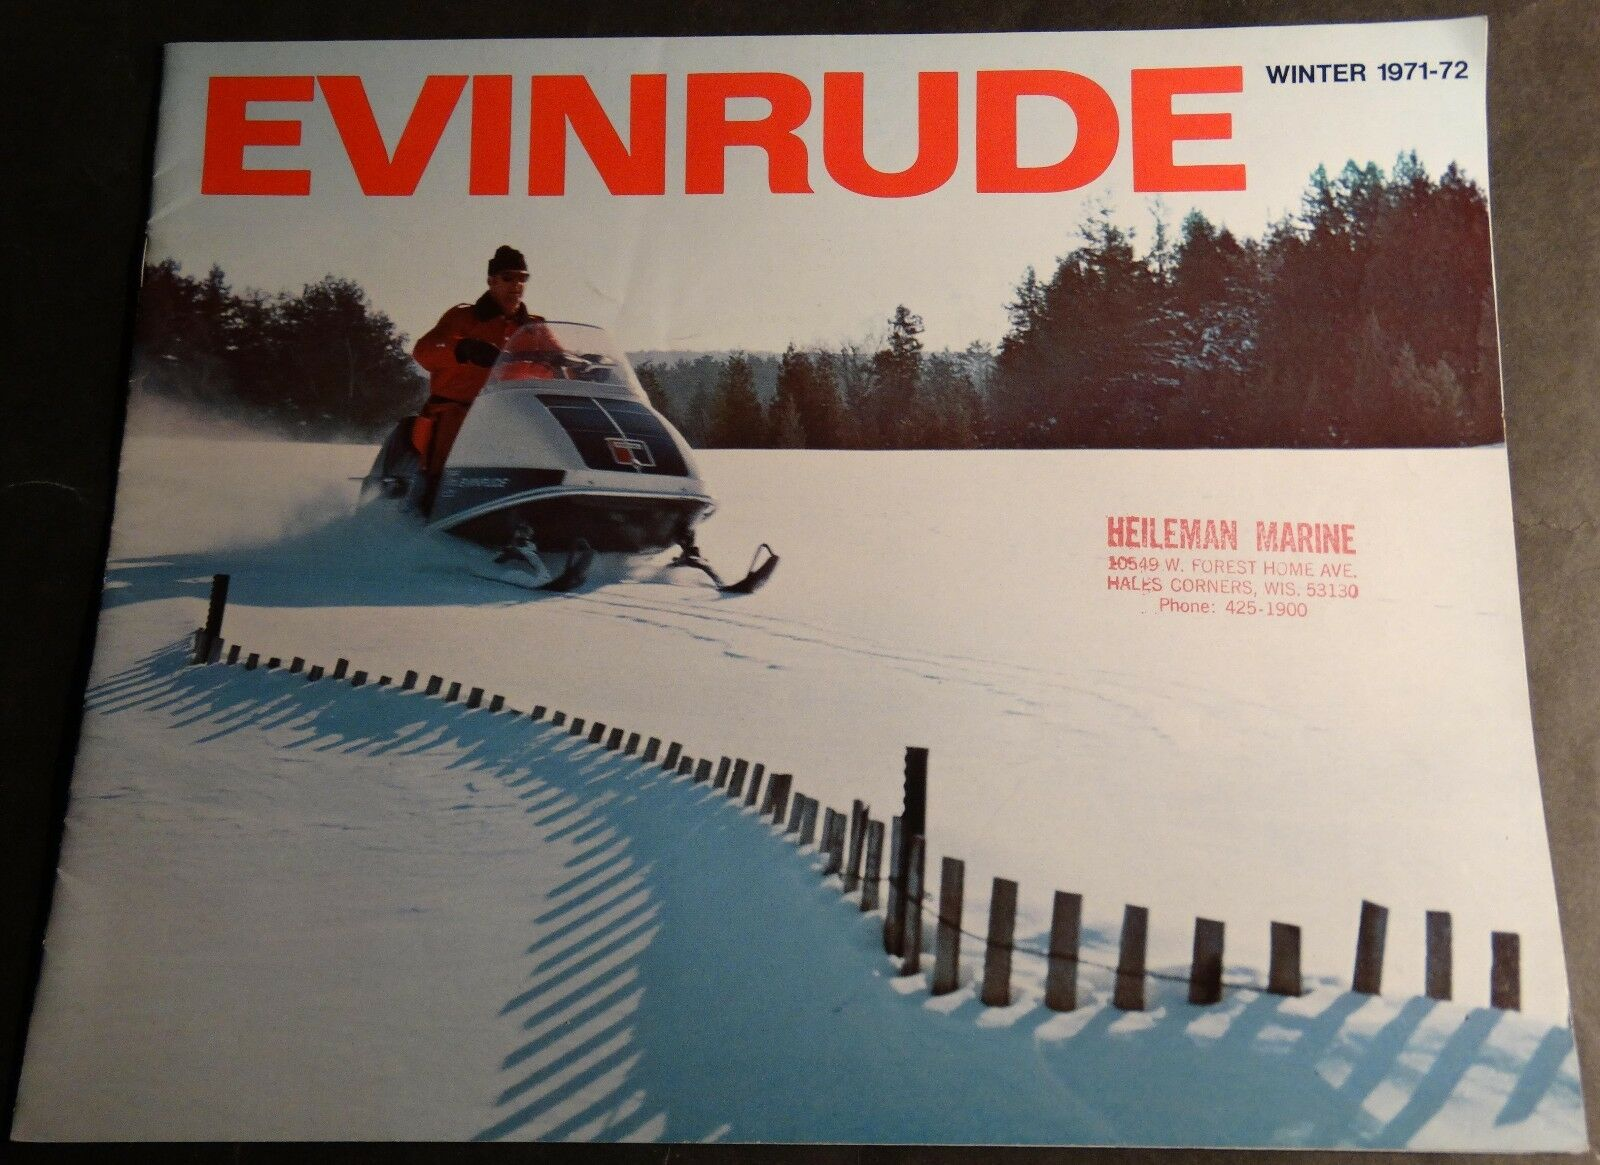 1972 EVINRUDE FULL LINE SNOWMOBILE SALES BROCHURE 12 PAGES  (909)